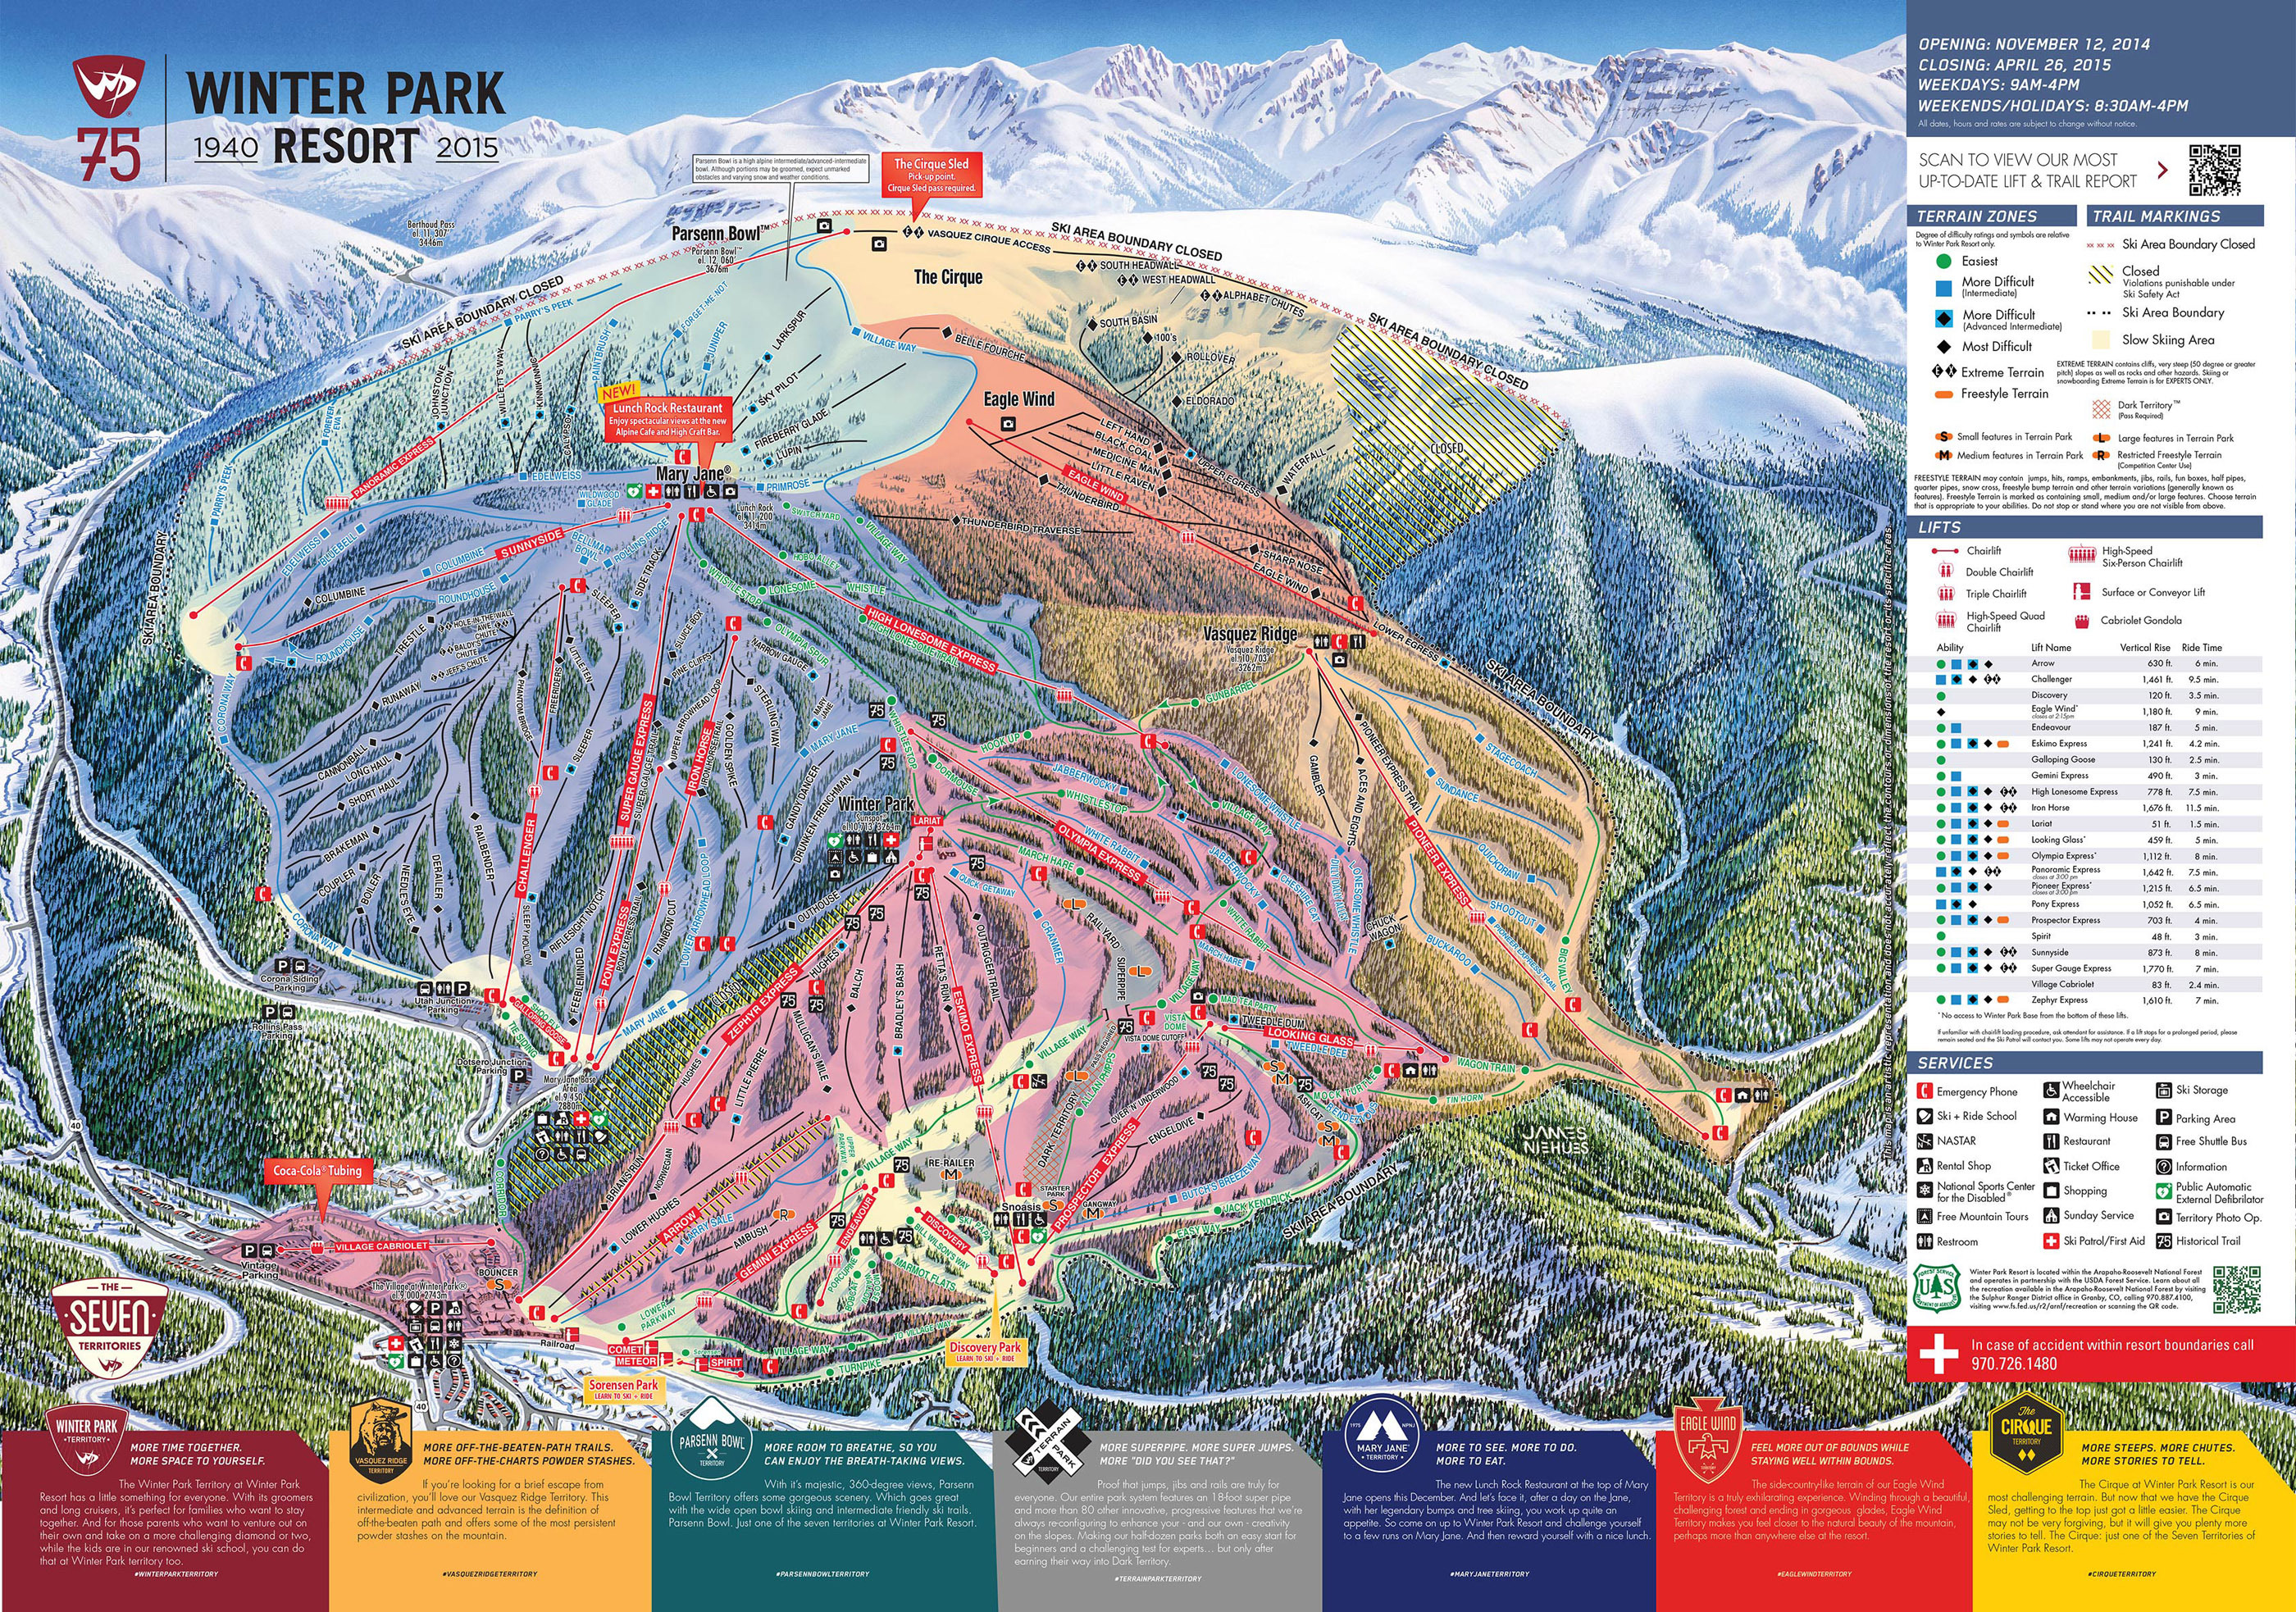 Winter Park Resort Colorado Weather Forecast OnTheSnow - Map of united states weather forecast